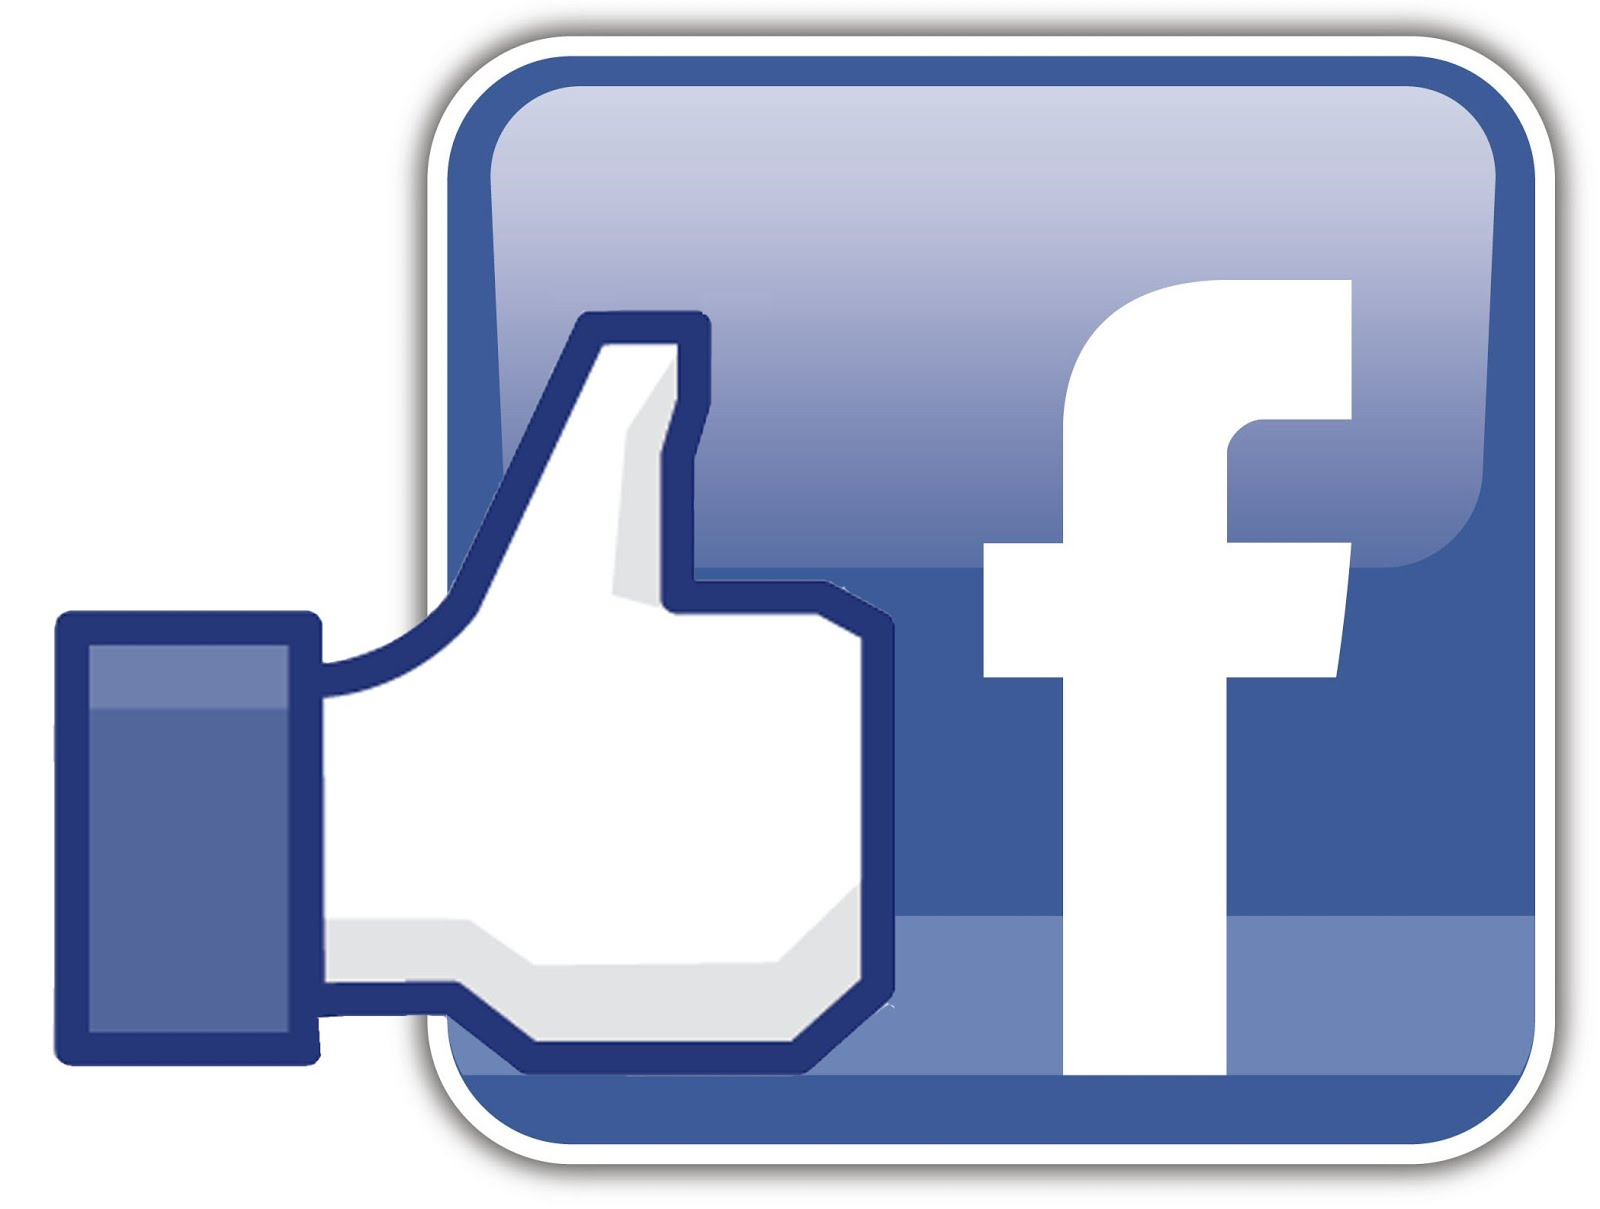 Facebook Clipart New Picture 2673383 Facebook Clipart New